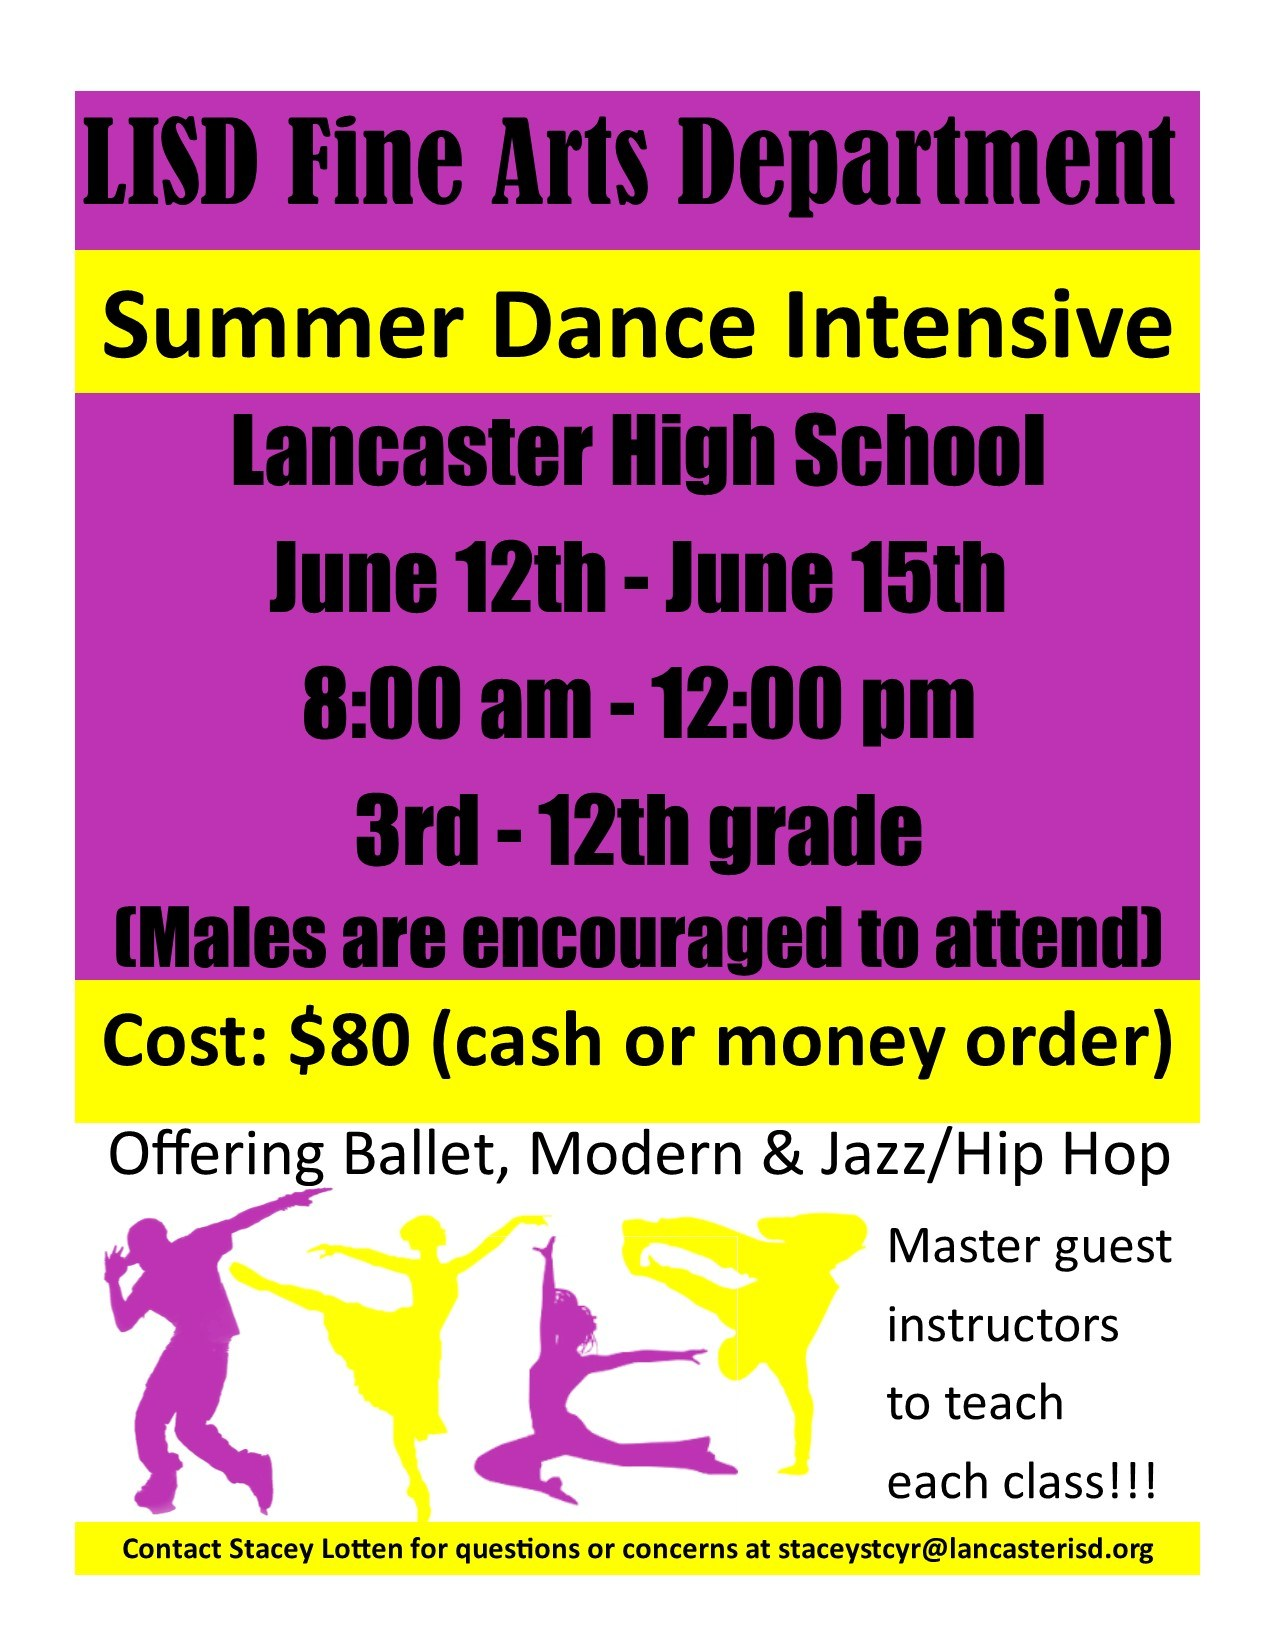 Summer Dance Program Flyer